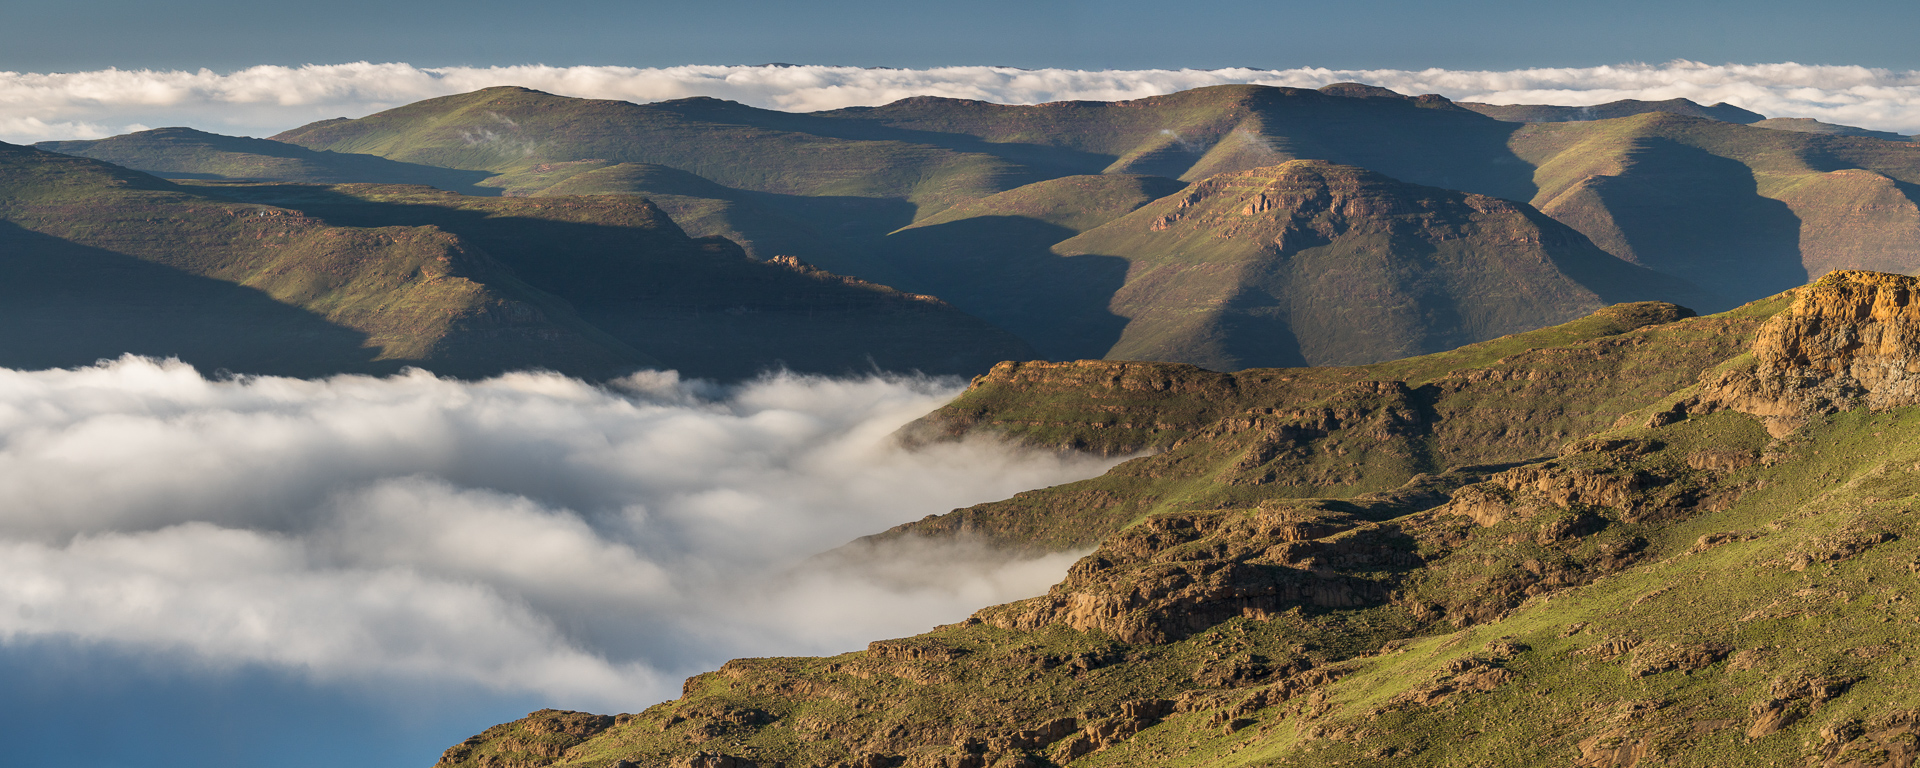 I've have long wanted to capture an image of the hills of Lesotho that I could be proud of. With this image I think I have acheived my goal.